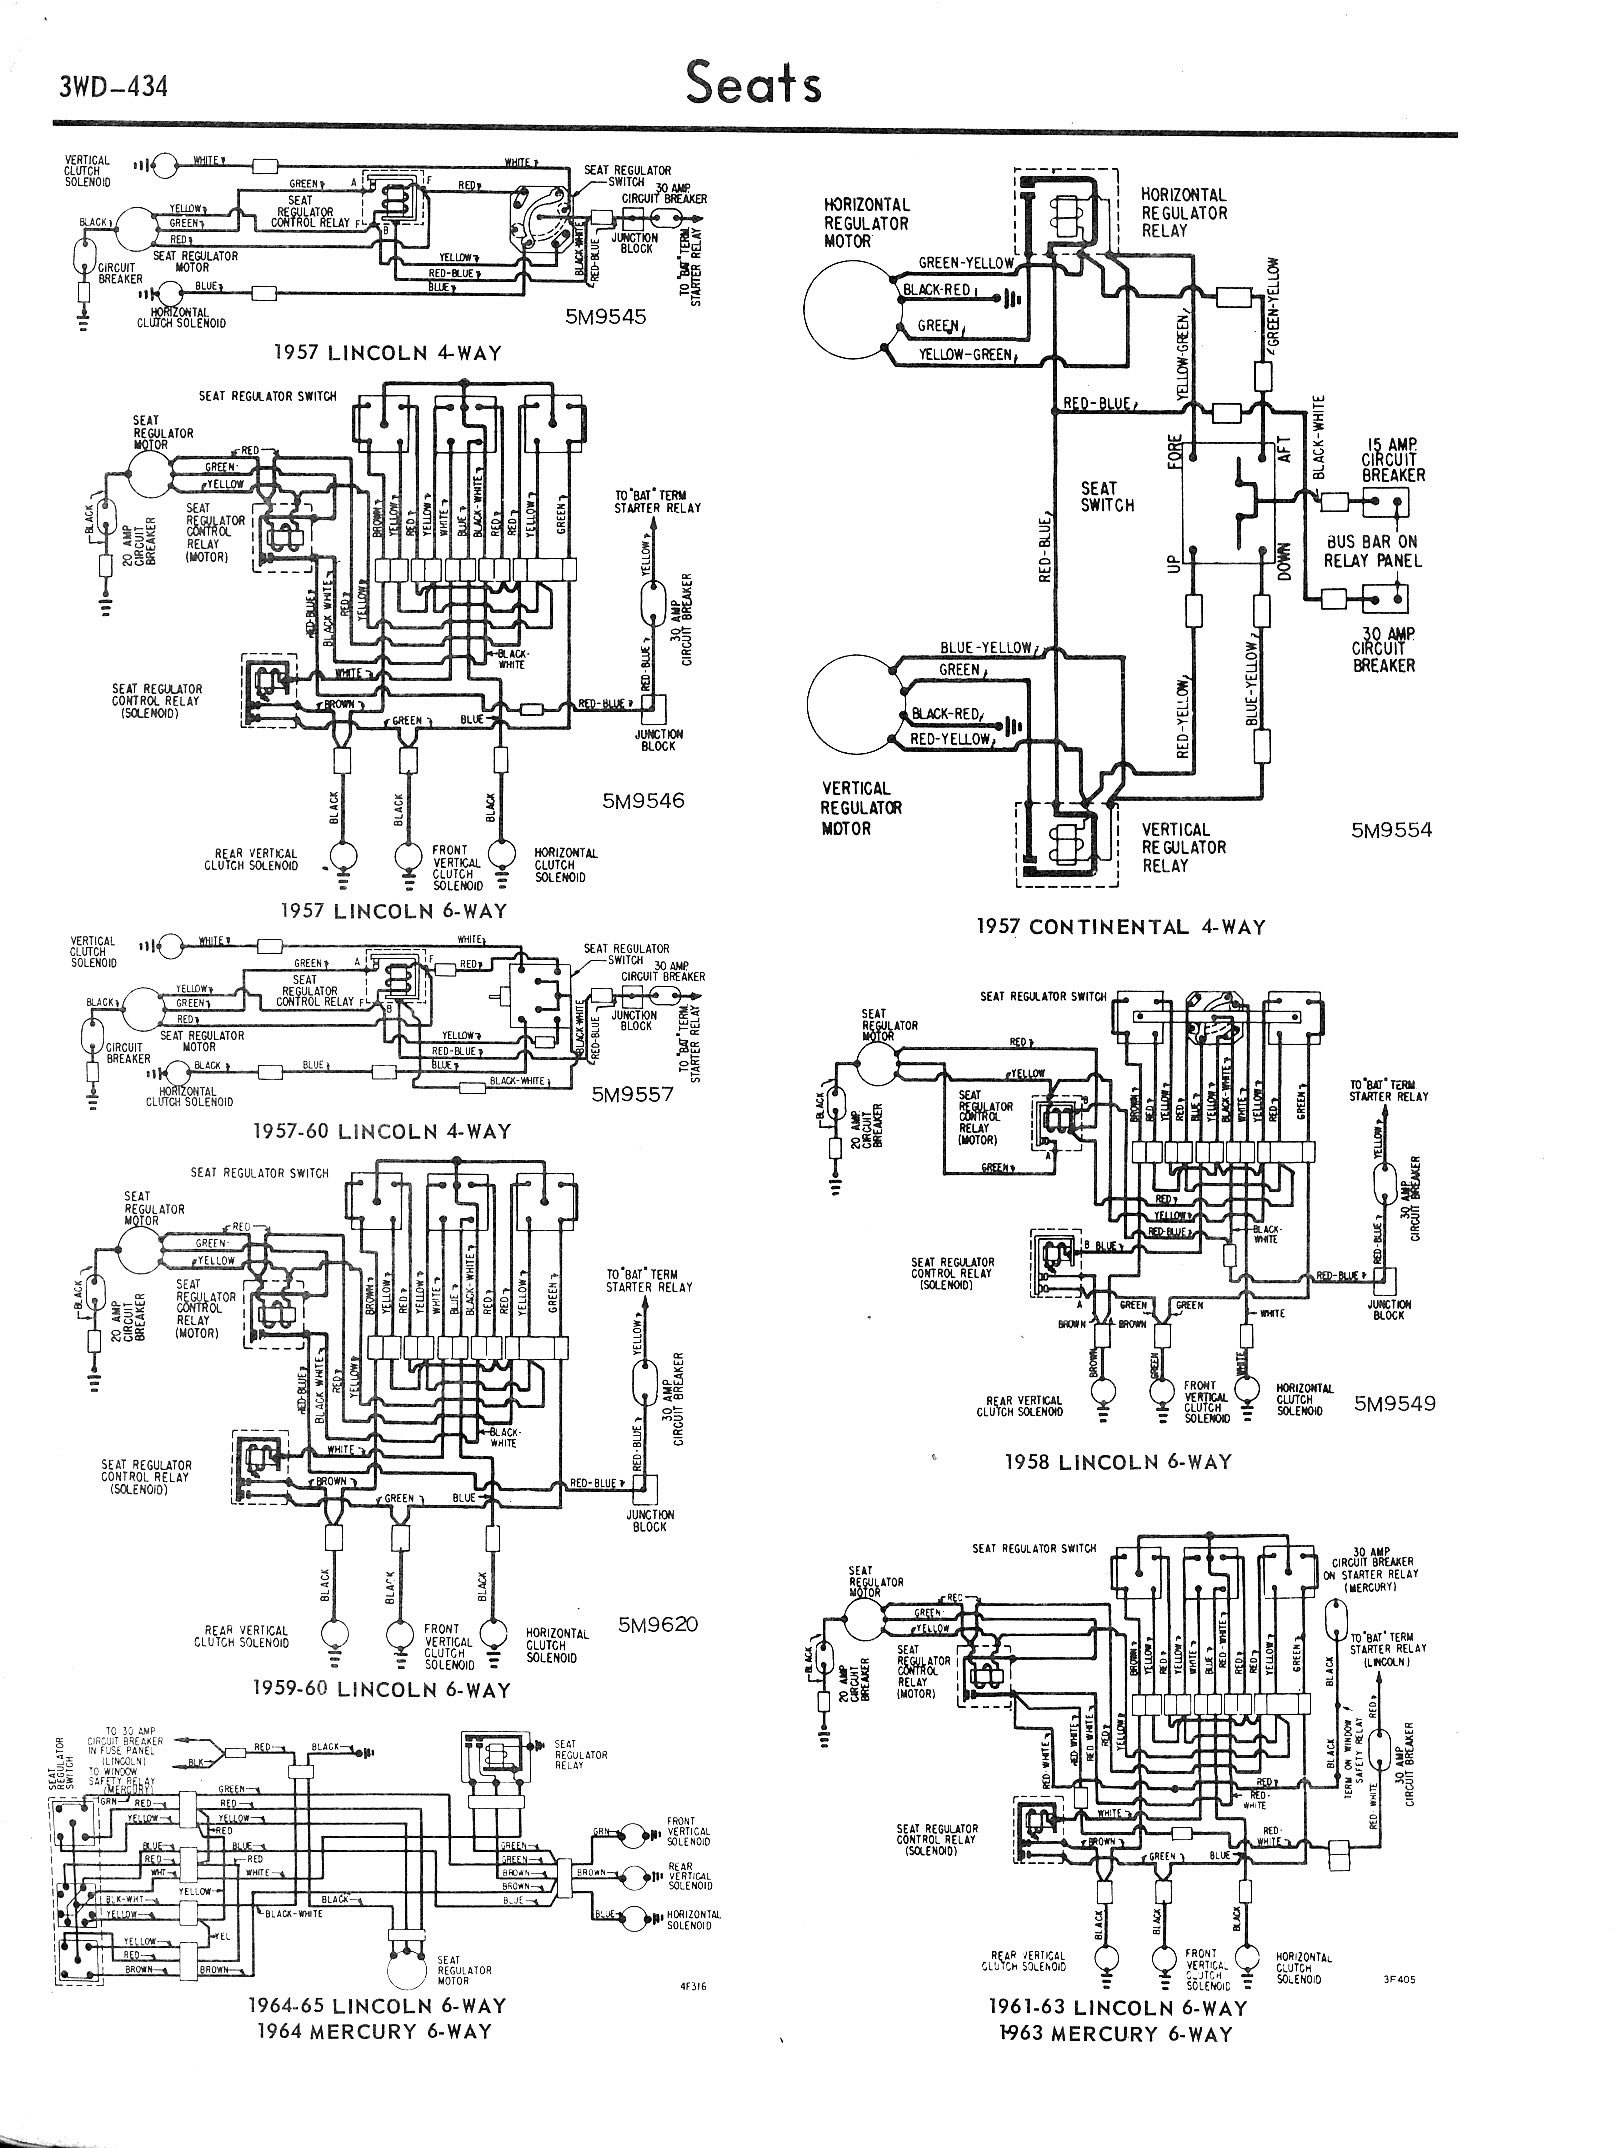 Ford Diagrams 65 Mustang Engine Diagram 57 Lincoln 4 Way 6 Continental 63 64 Mercury